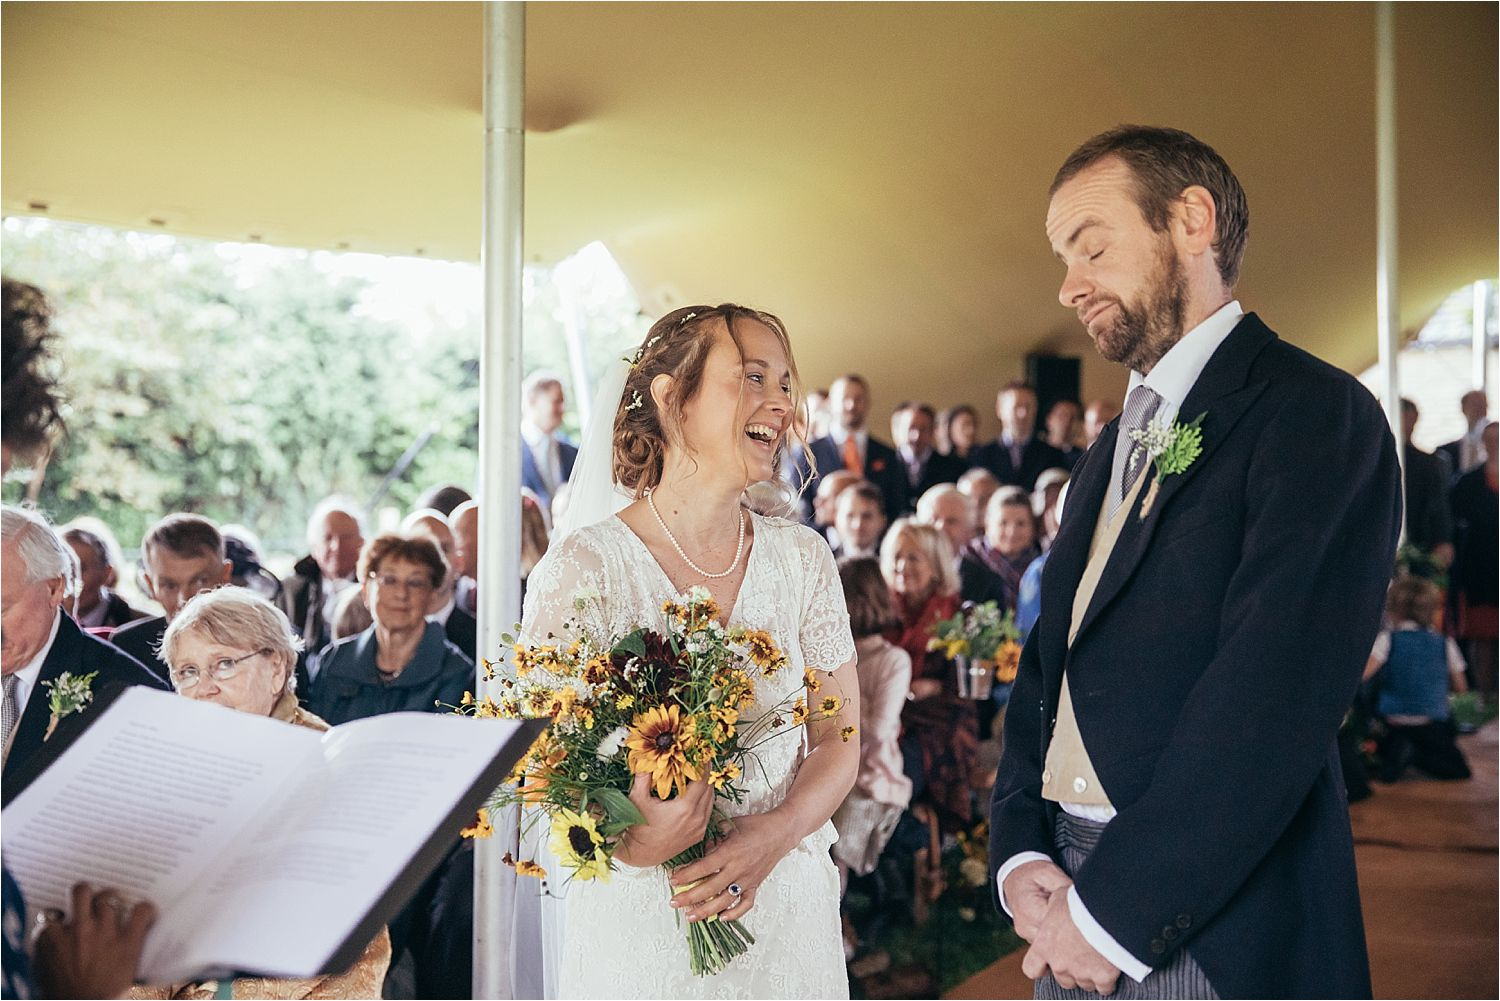 Exchange of vows at Manchester tipt wedding. Flowers by Fletcher and Foley, Manchester